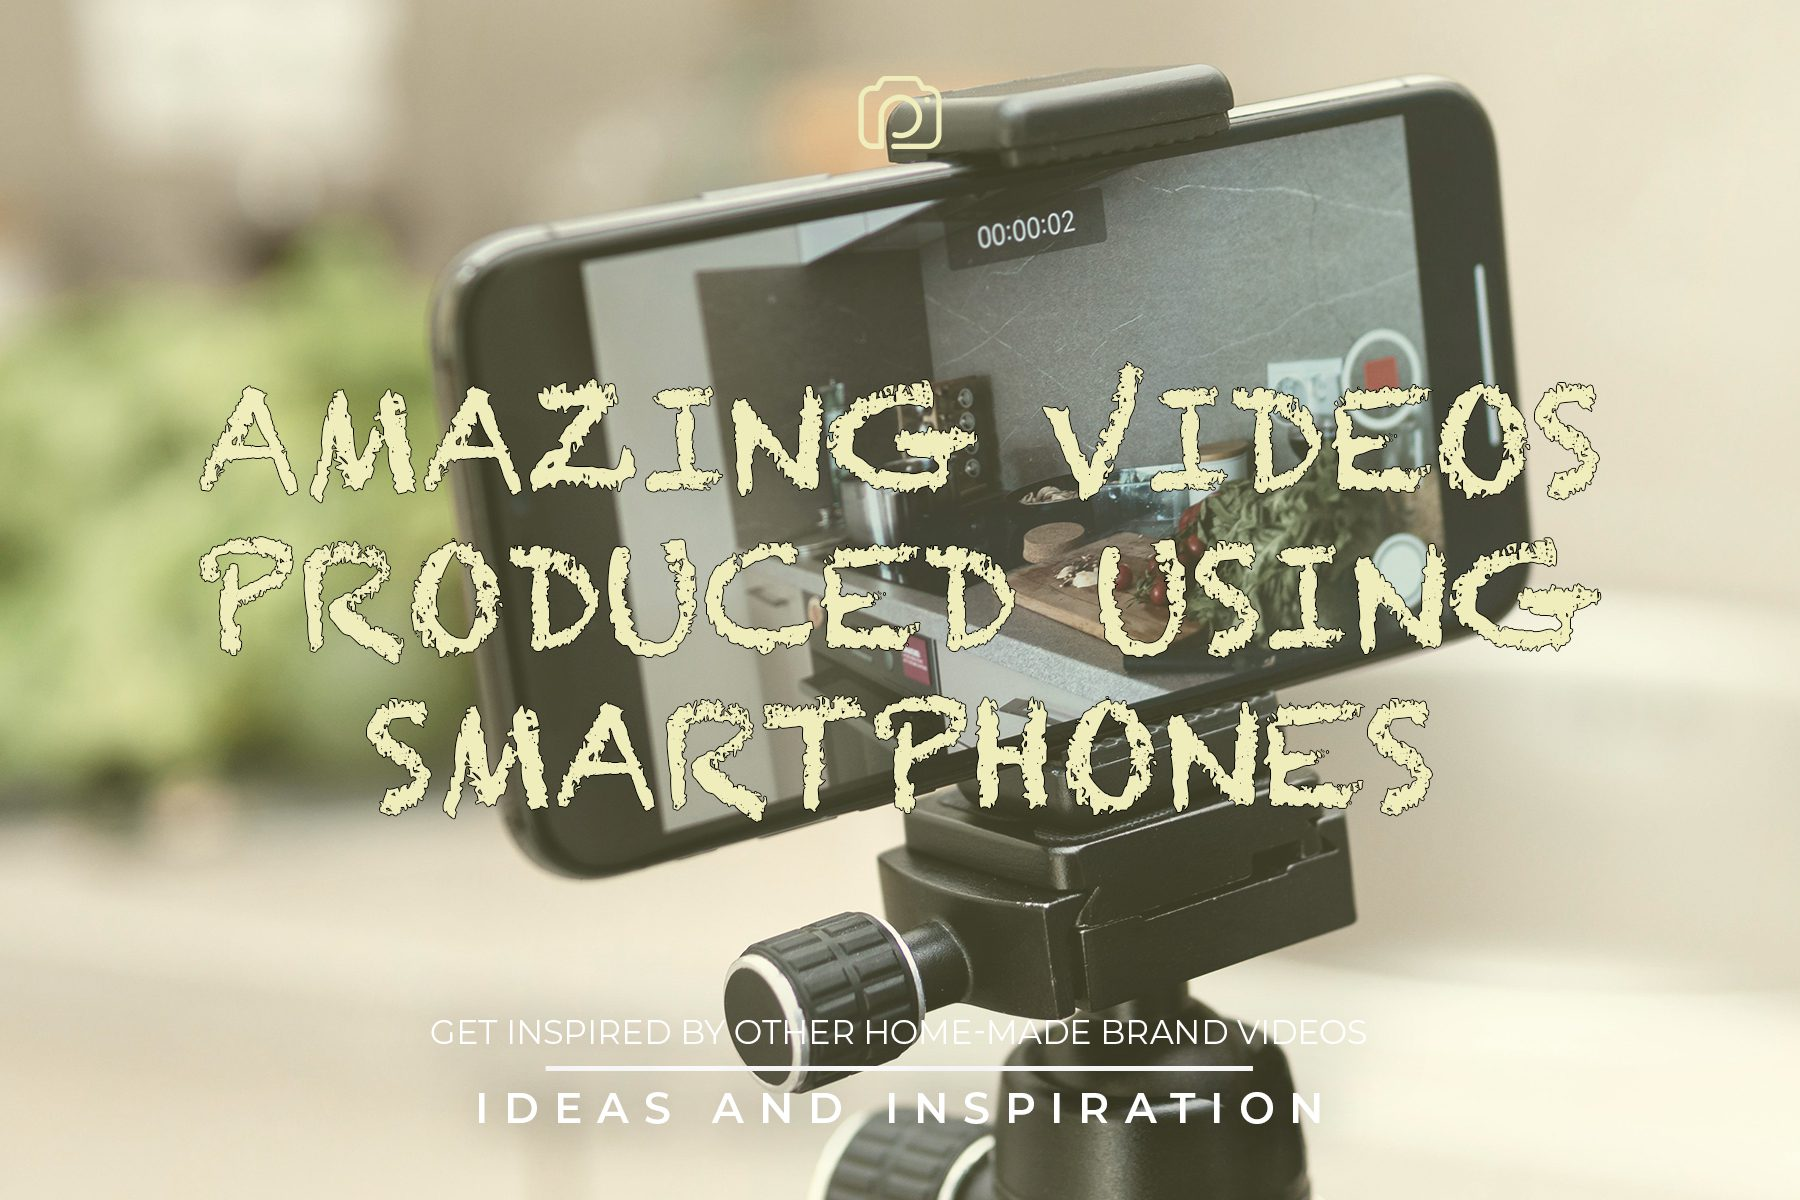 Amazing videos produced using smartphones